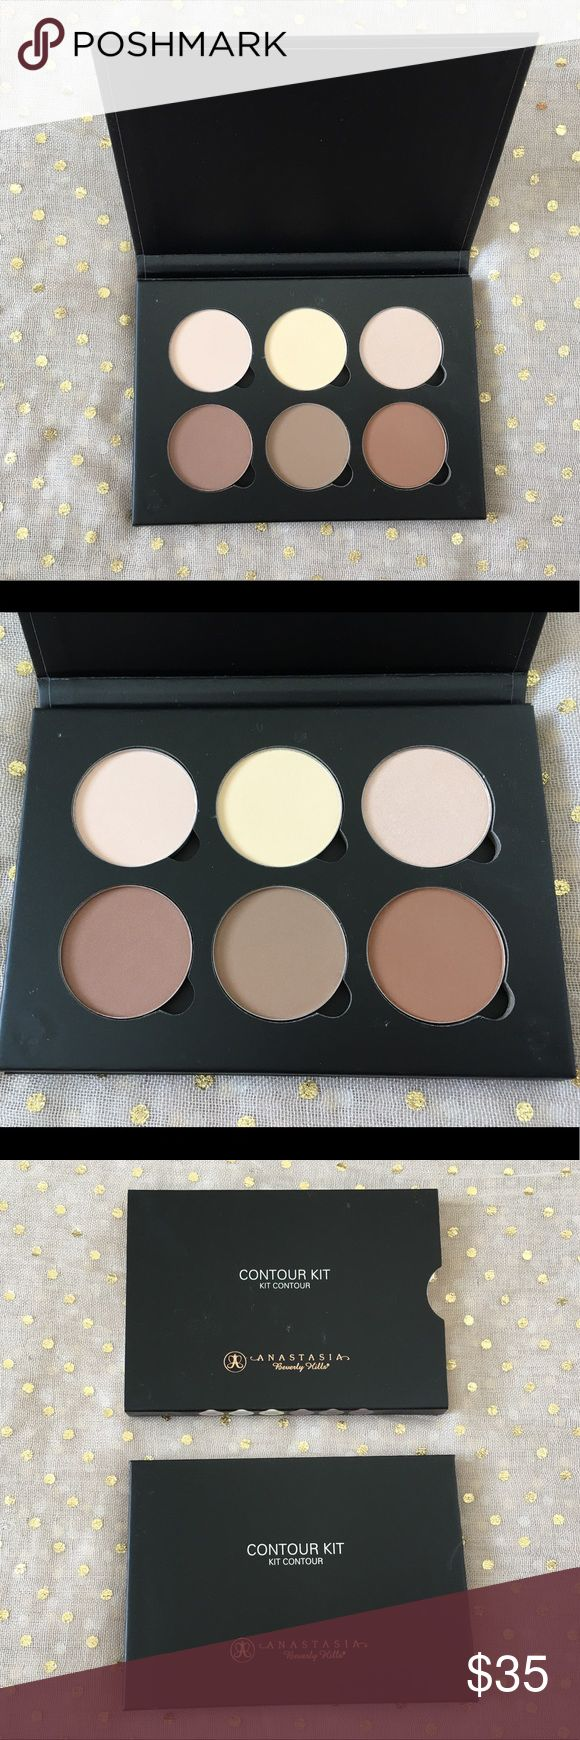 Anastasia Contour Kit New with complete packaging. Never used or swatched. Anastasia Contour Kit in Light to Medium. Shades: Vanilla, (pale cream), Banana (pale yellow), Sand (radiant chiffon), Java (mocha), Fawn (tawny), and Havana (warm russet) Anastasia Beverly Hills Makeup Face Powder